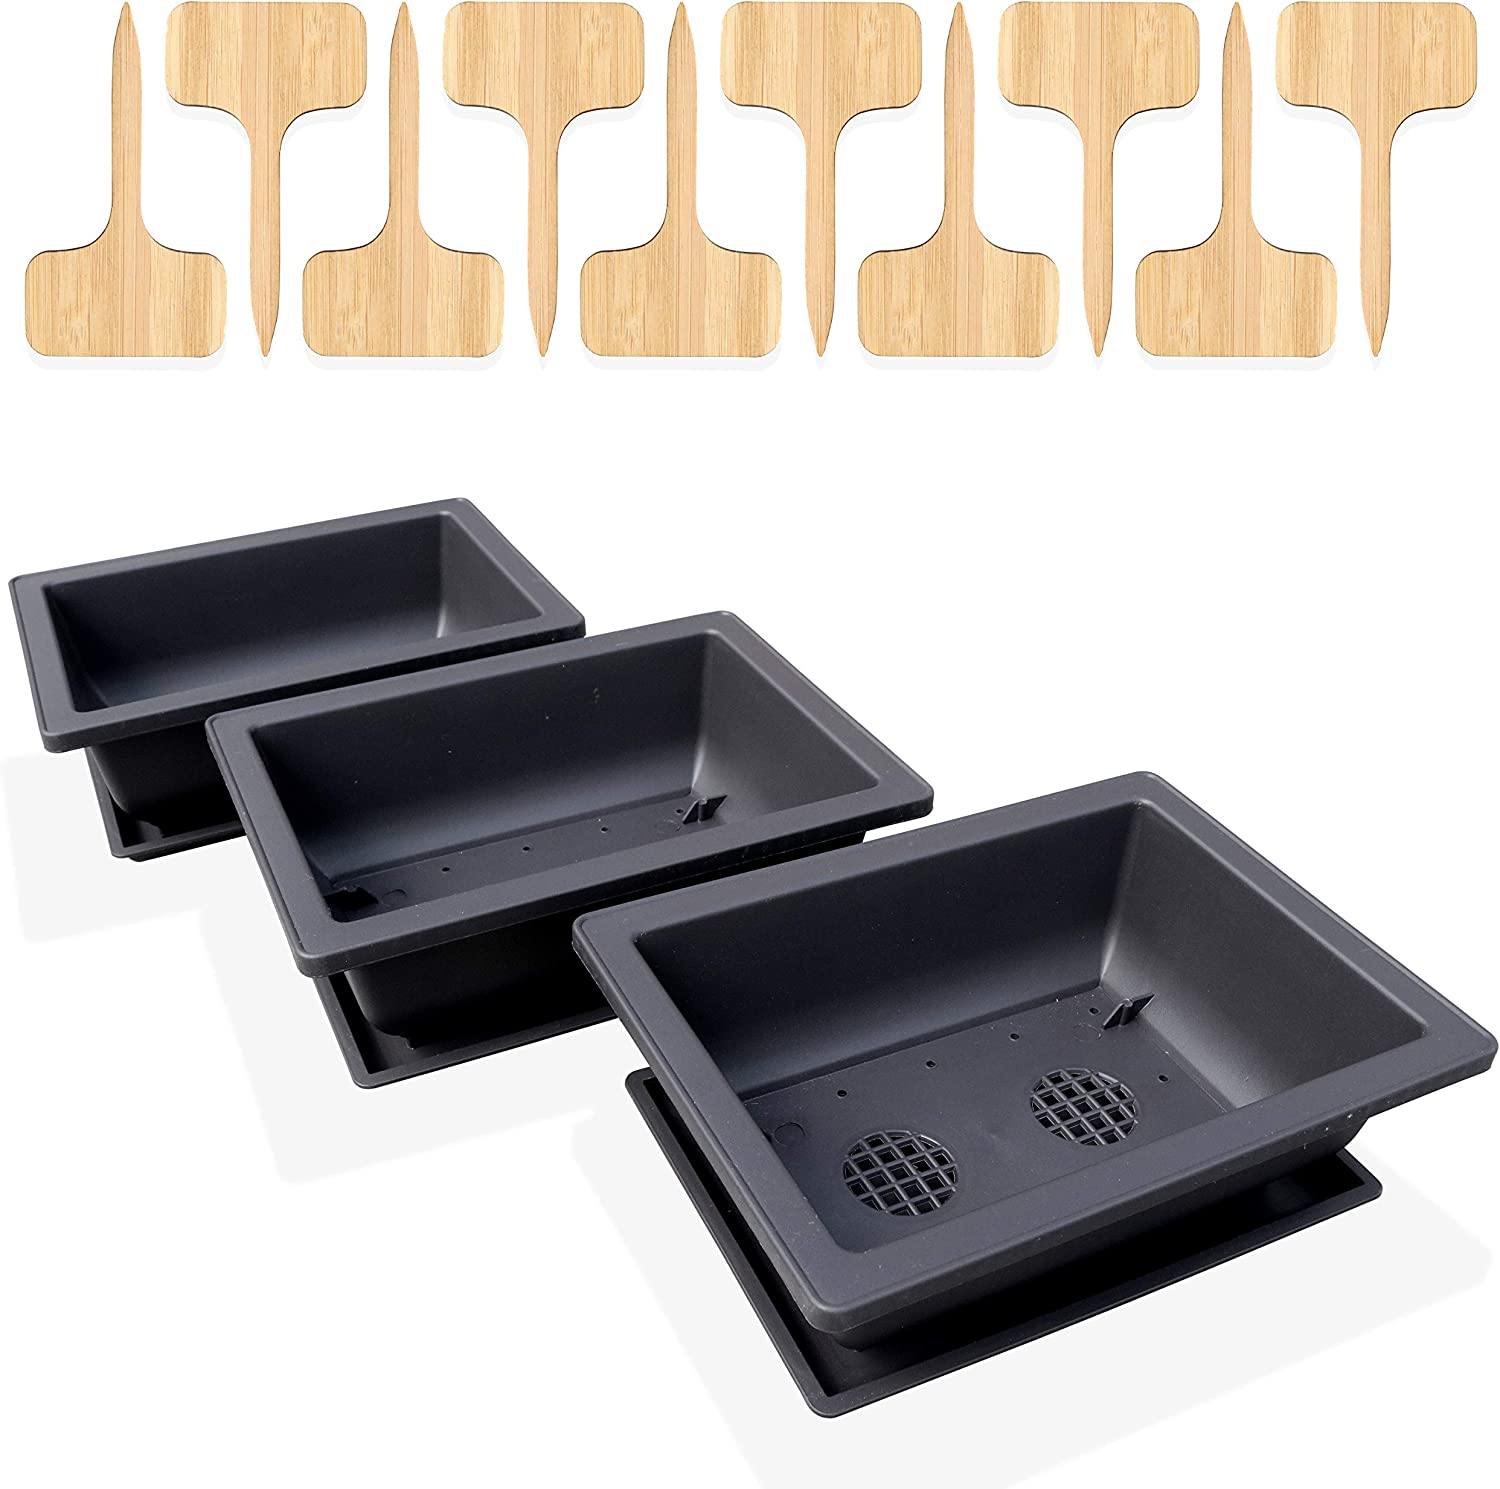 GENIELY 3 Pack of 8-Inch Bonsai Training Pots with 3 Humidity Trays and Built-in Drainage Mesh - Heavy Duty Shatterproof Poly-Resin Plastic - Complete with 10 Bamboo Plant Labels